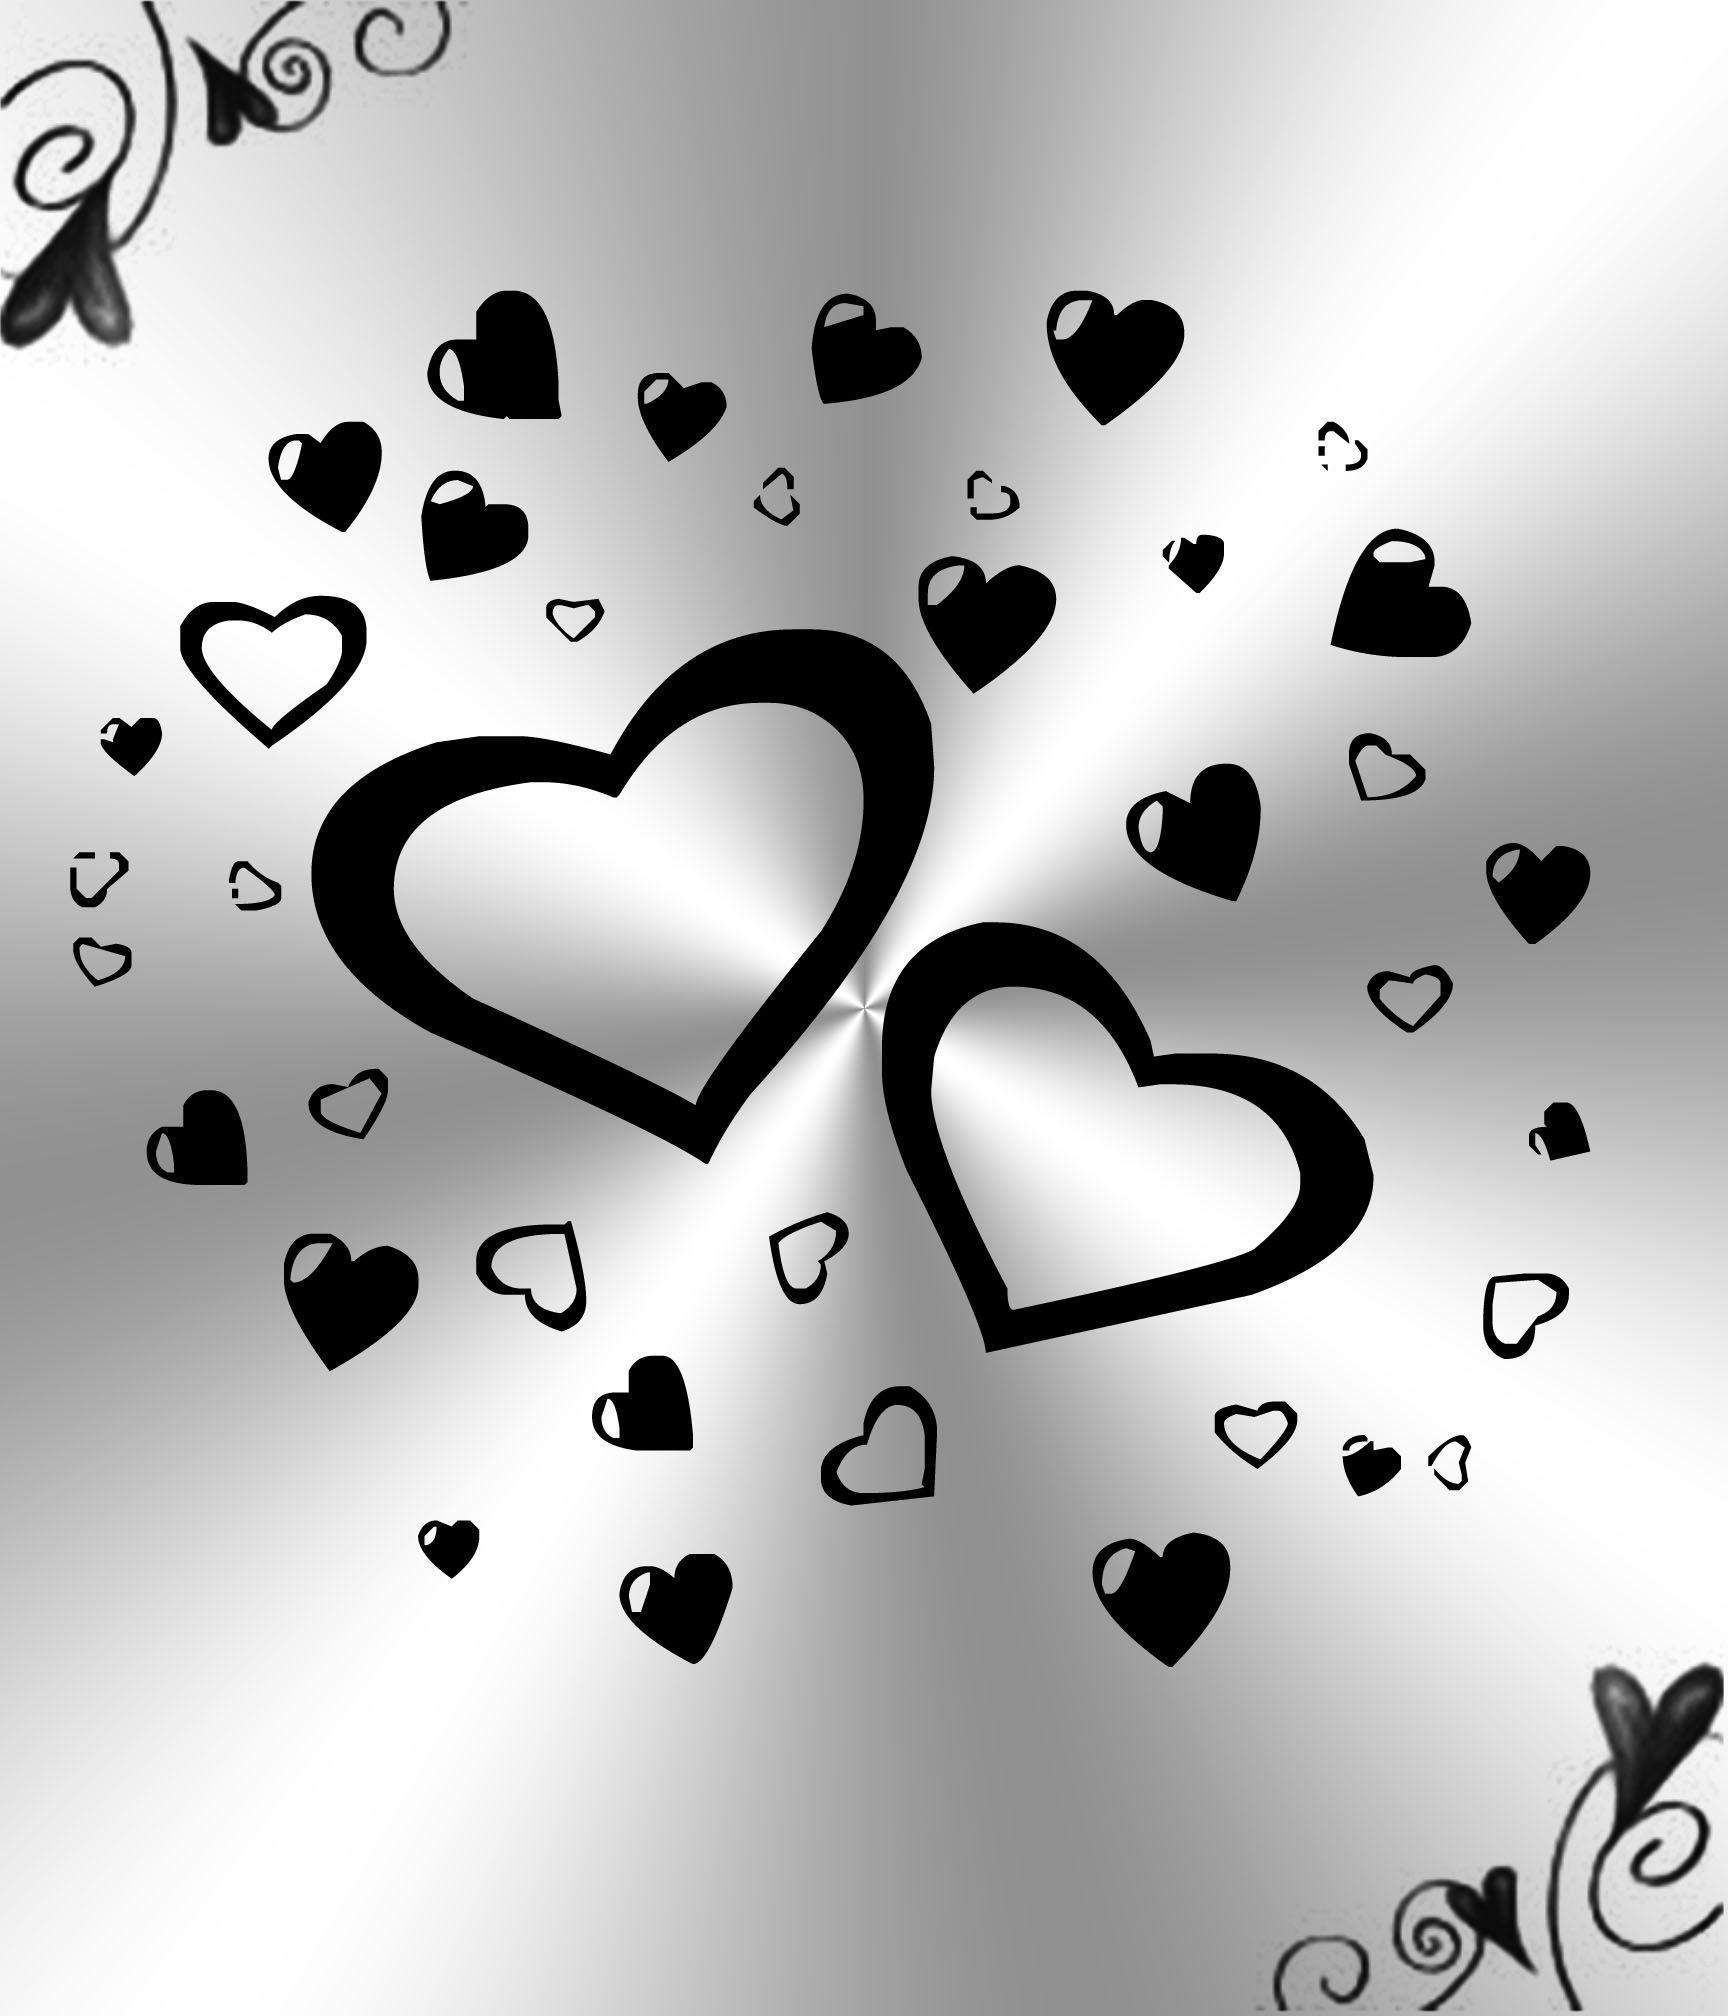 Black And White Heart Backgrounds - Wallpaper Cave